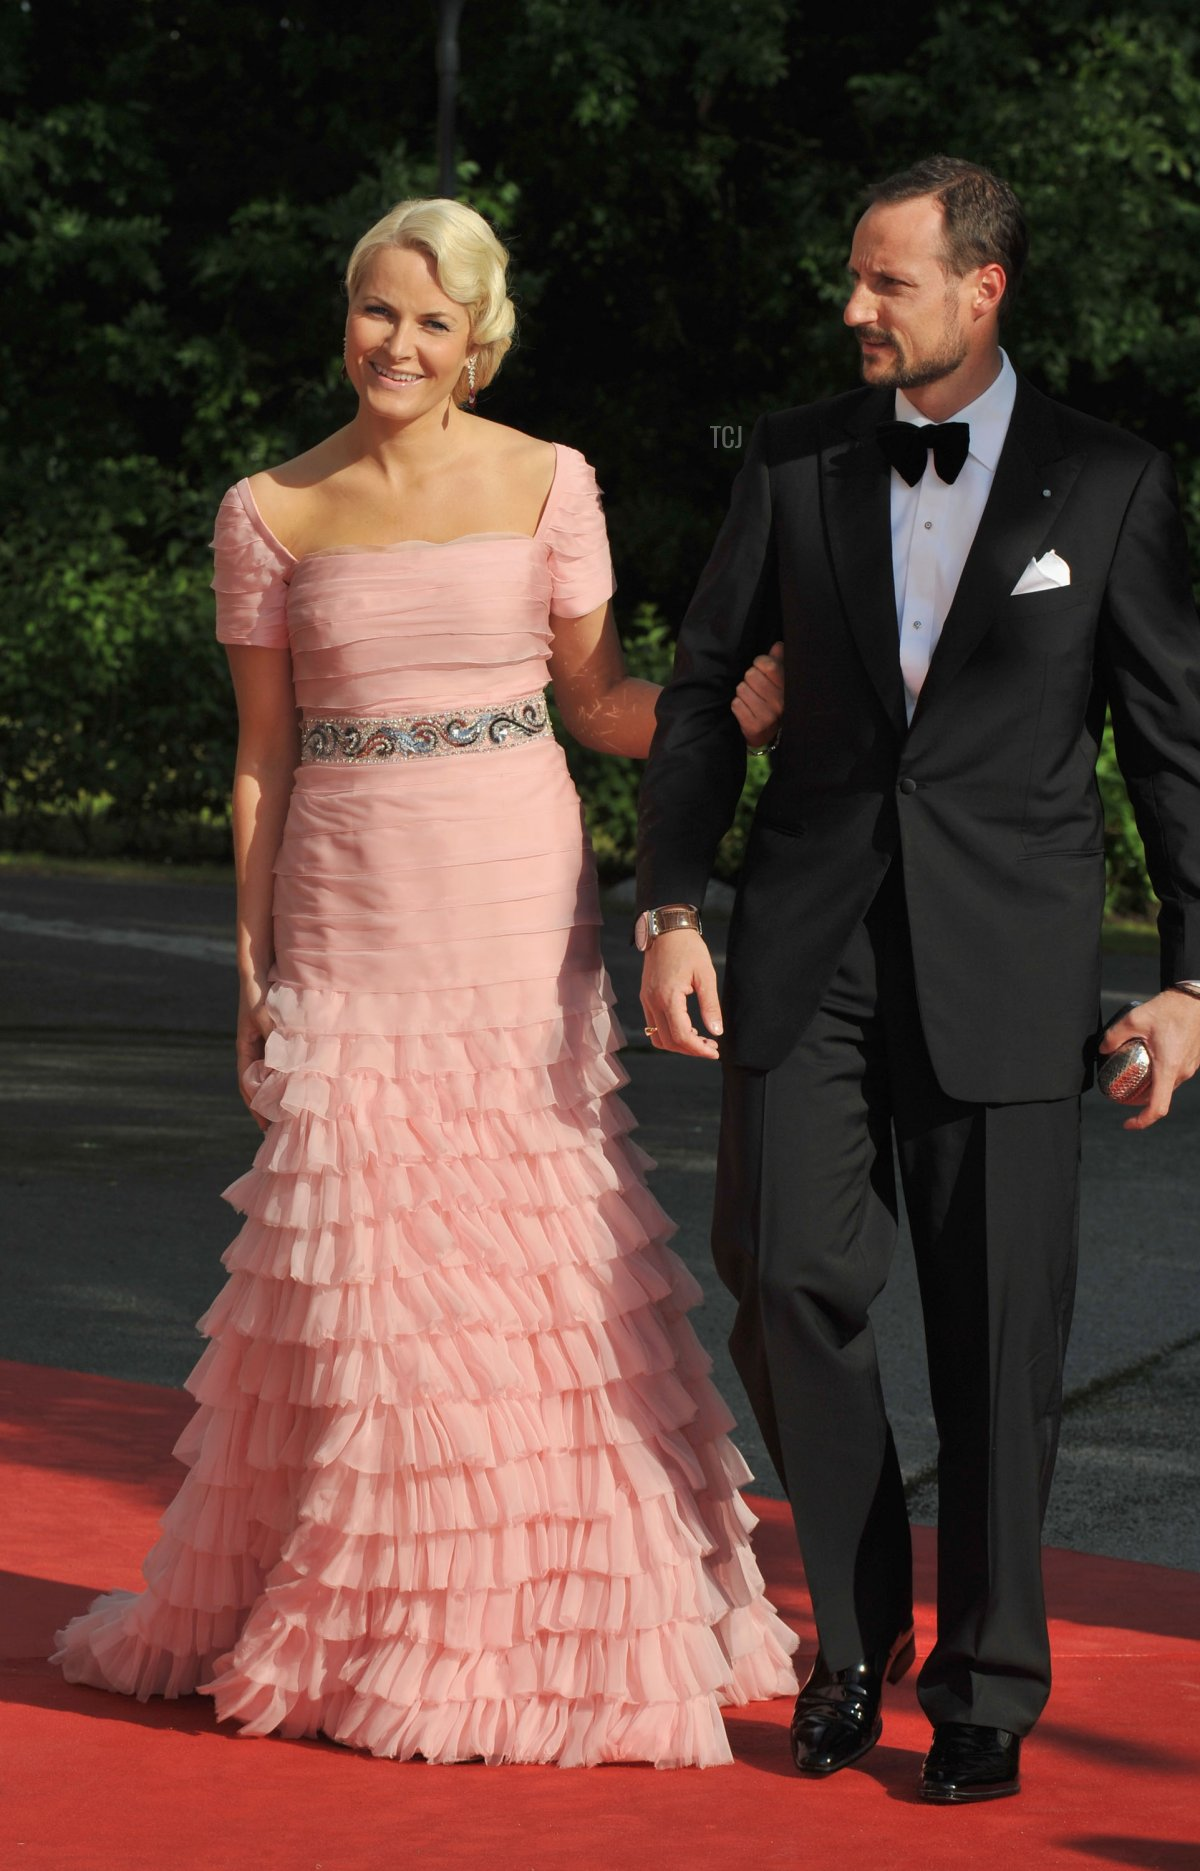 Princess Mette-Marit of Norway and Prince Haakon of Norway attend the Government Pre-Wedding Dinner for Crown Princess Victoria of Sweden and Daniel Westling at The Eric Ericson Hall on June 18, 2010 in Stockholm, Sweden